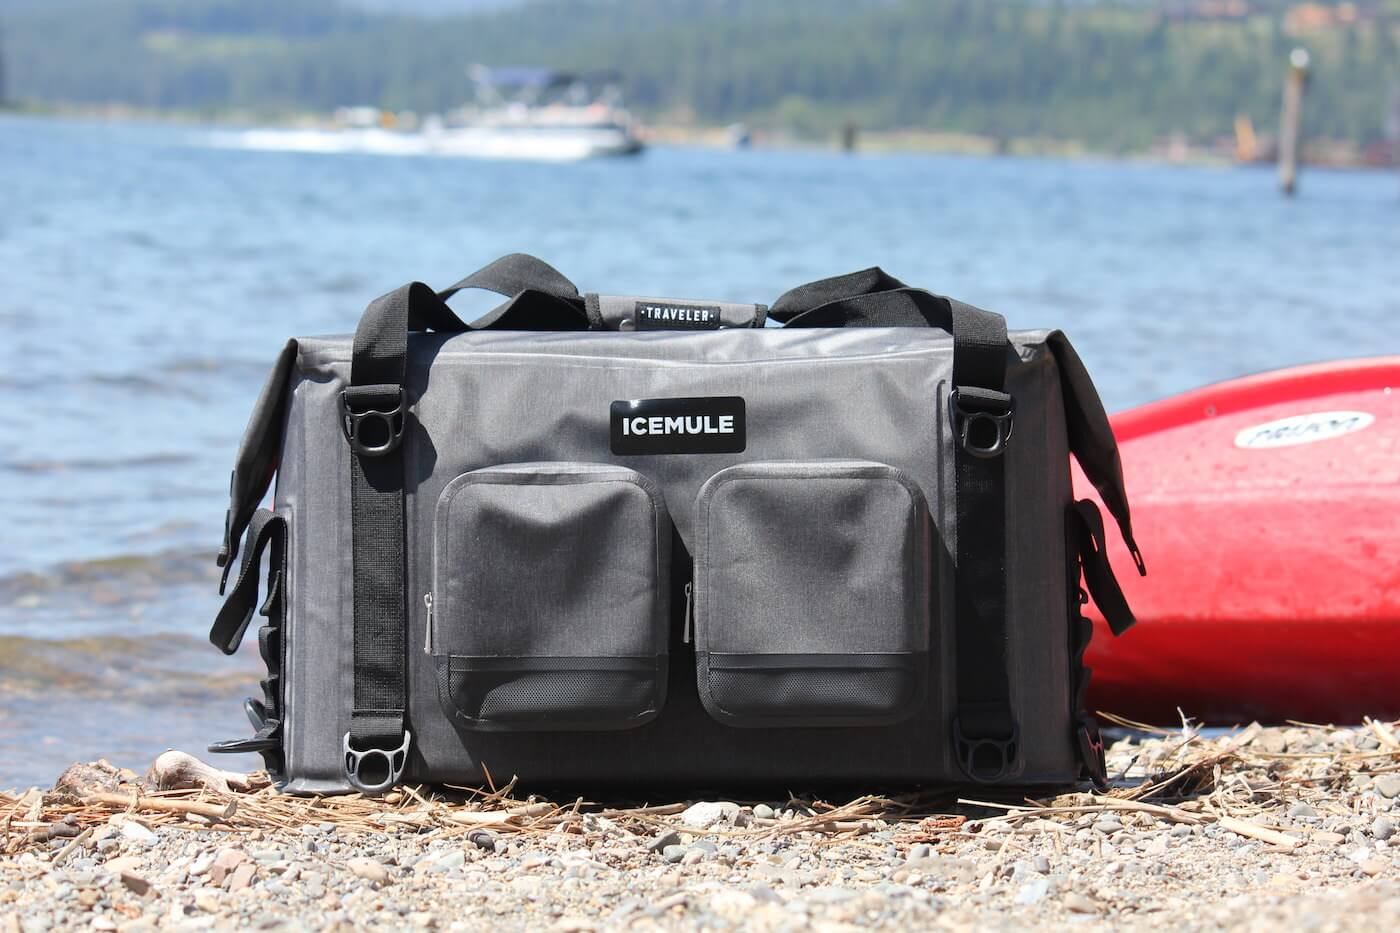 This photo shows the ICEMULE Traveler soft-sided cooler on a beach near water.